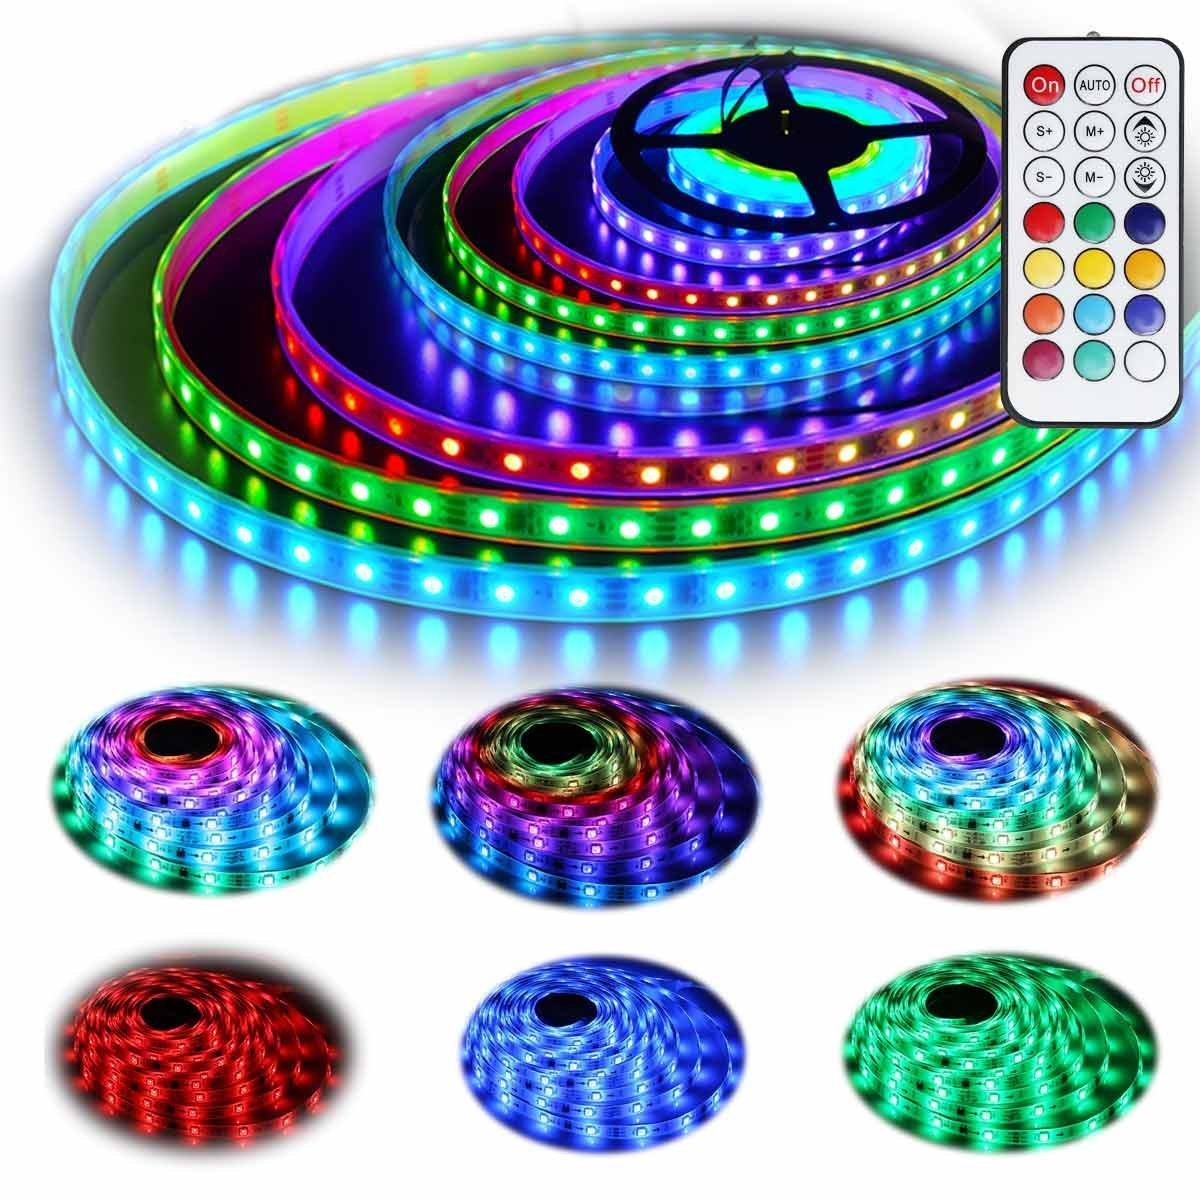 Chasing Effect Led Strip Lights Geekeep 12v Dreaming Color Chaser The Leds In This Circuit Produce A Pattern Waterproof Light With Rf Remote Controller House Cars Rooms Tv